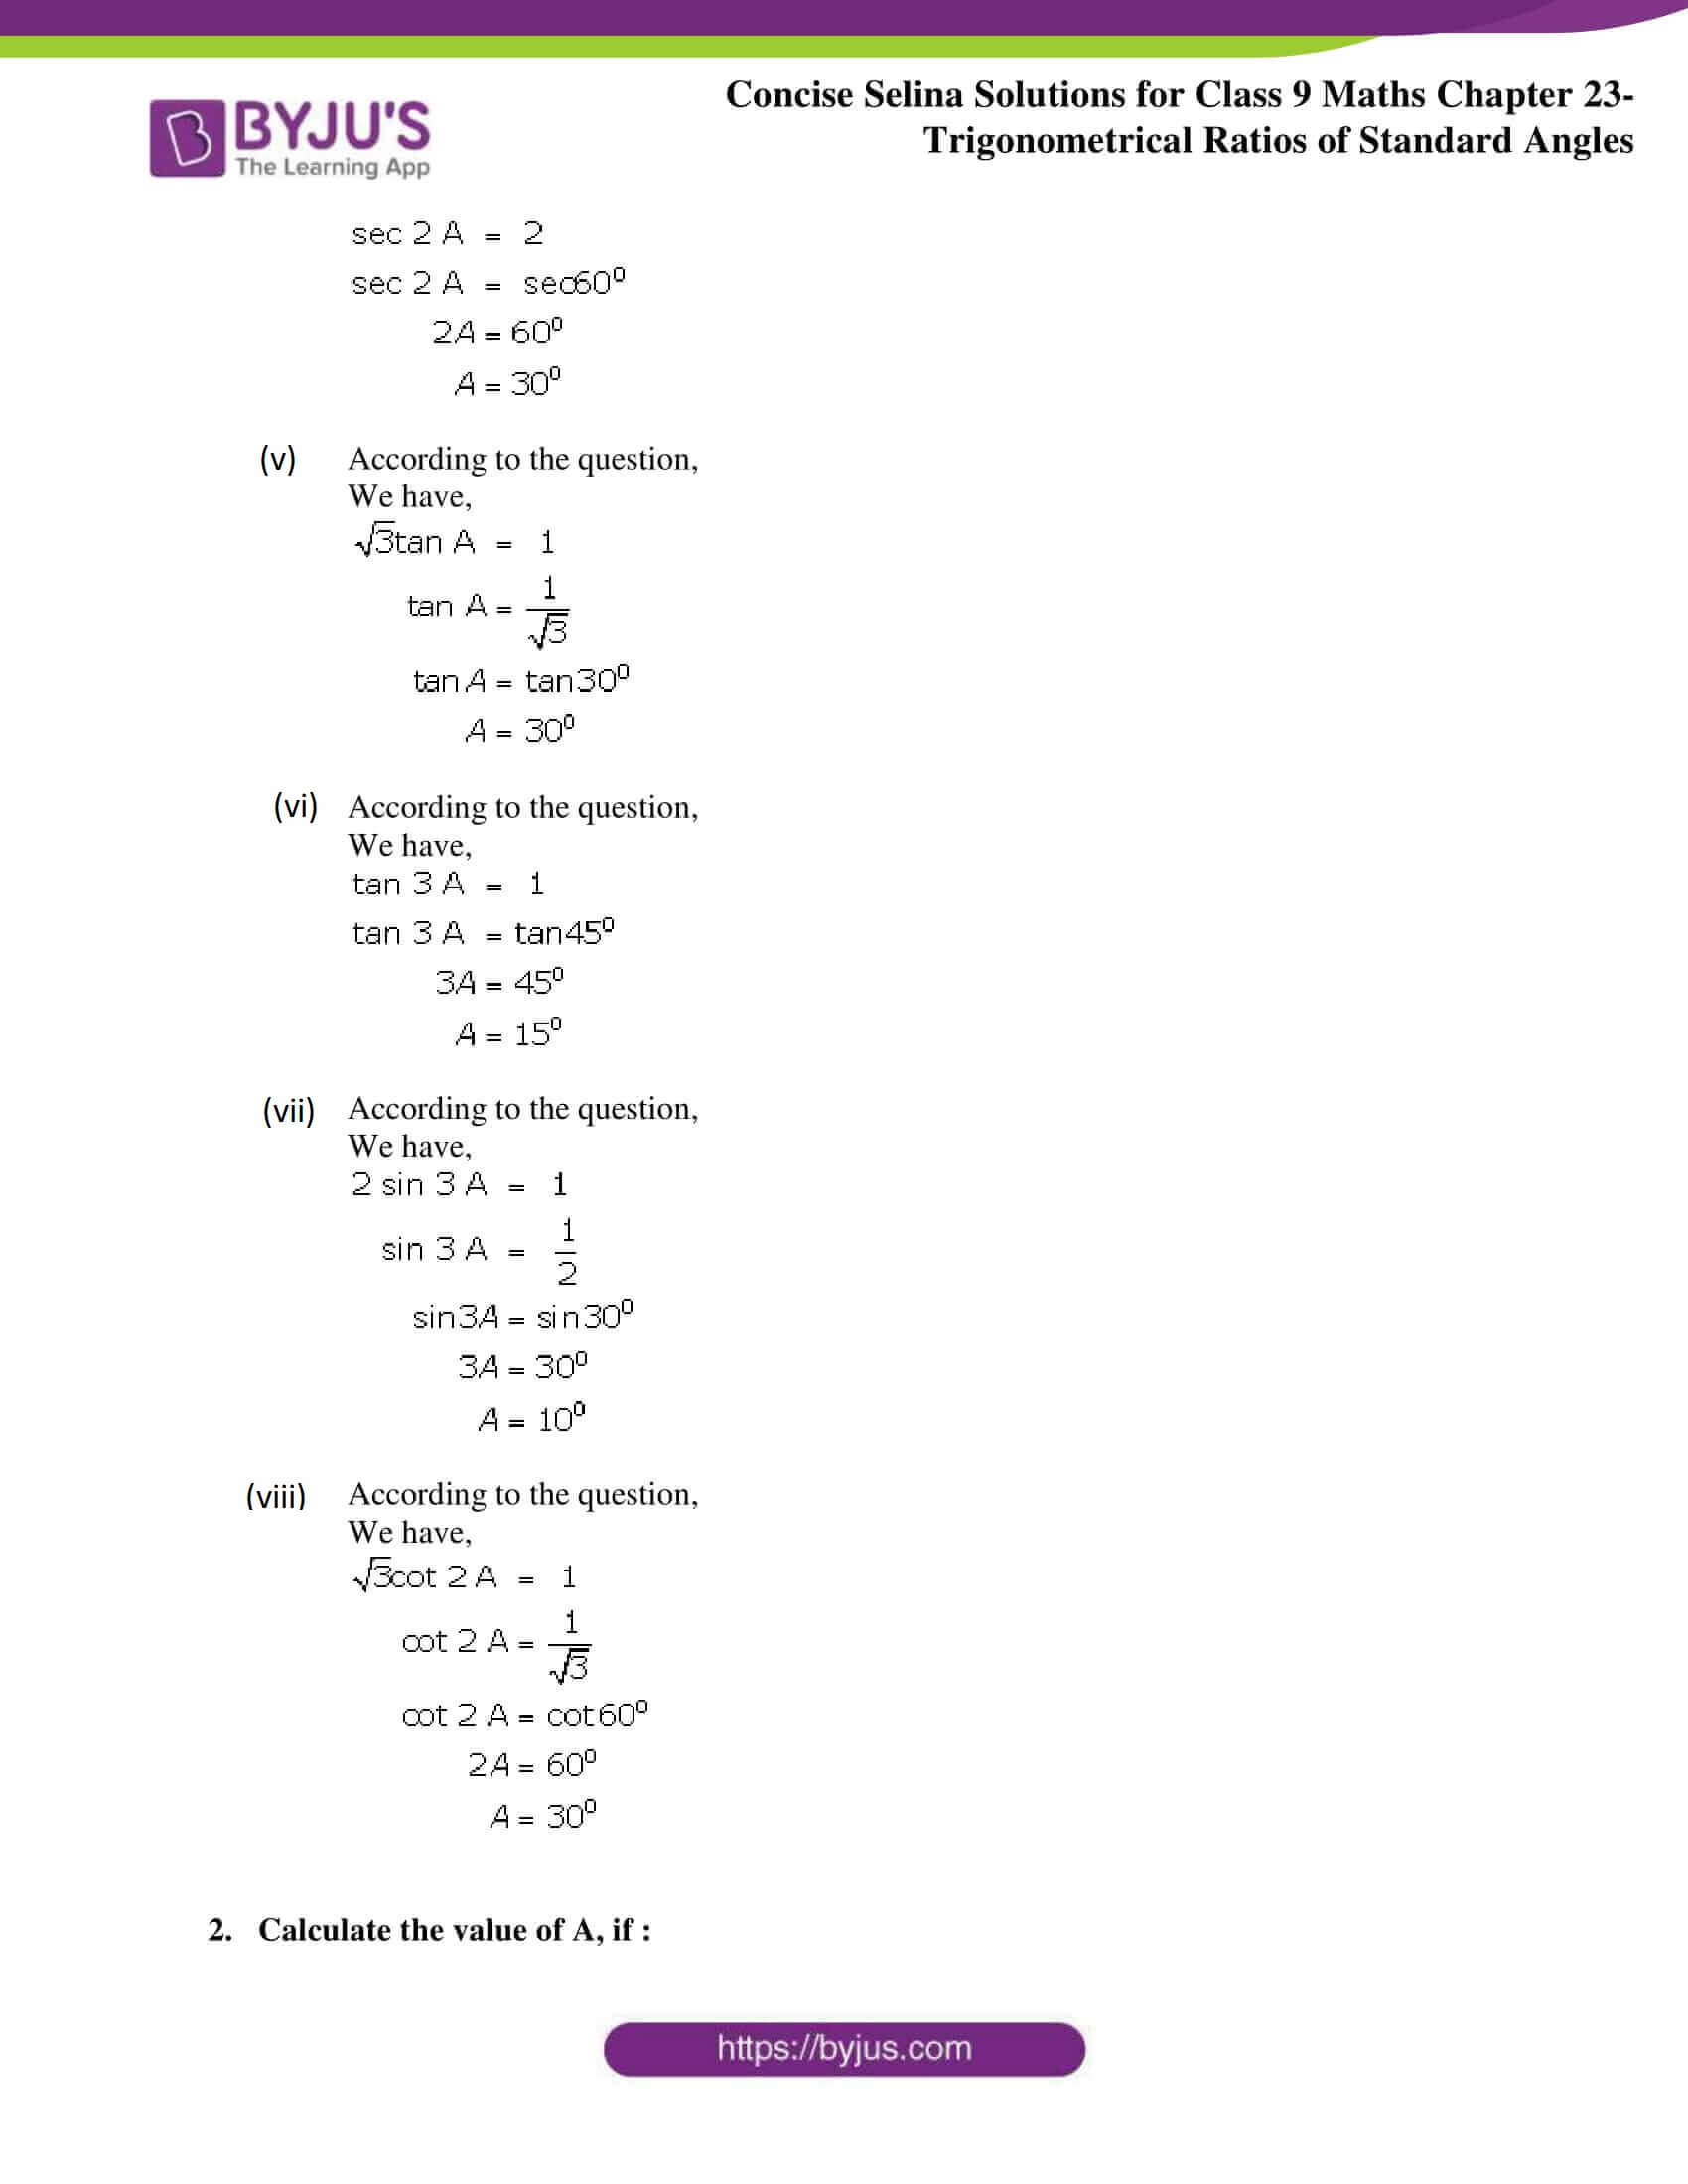 Concise Selina Solutions Class 9 Maths Chapter 23 part 20